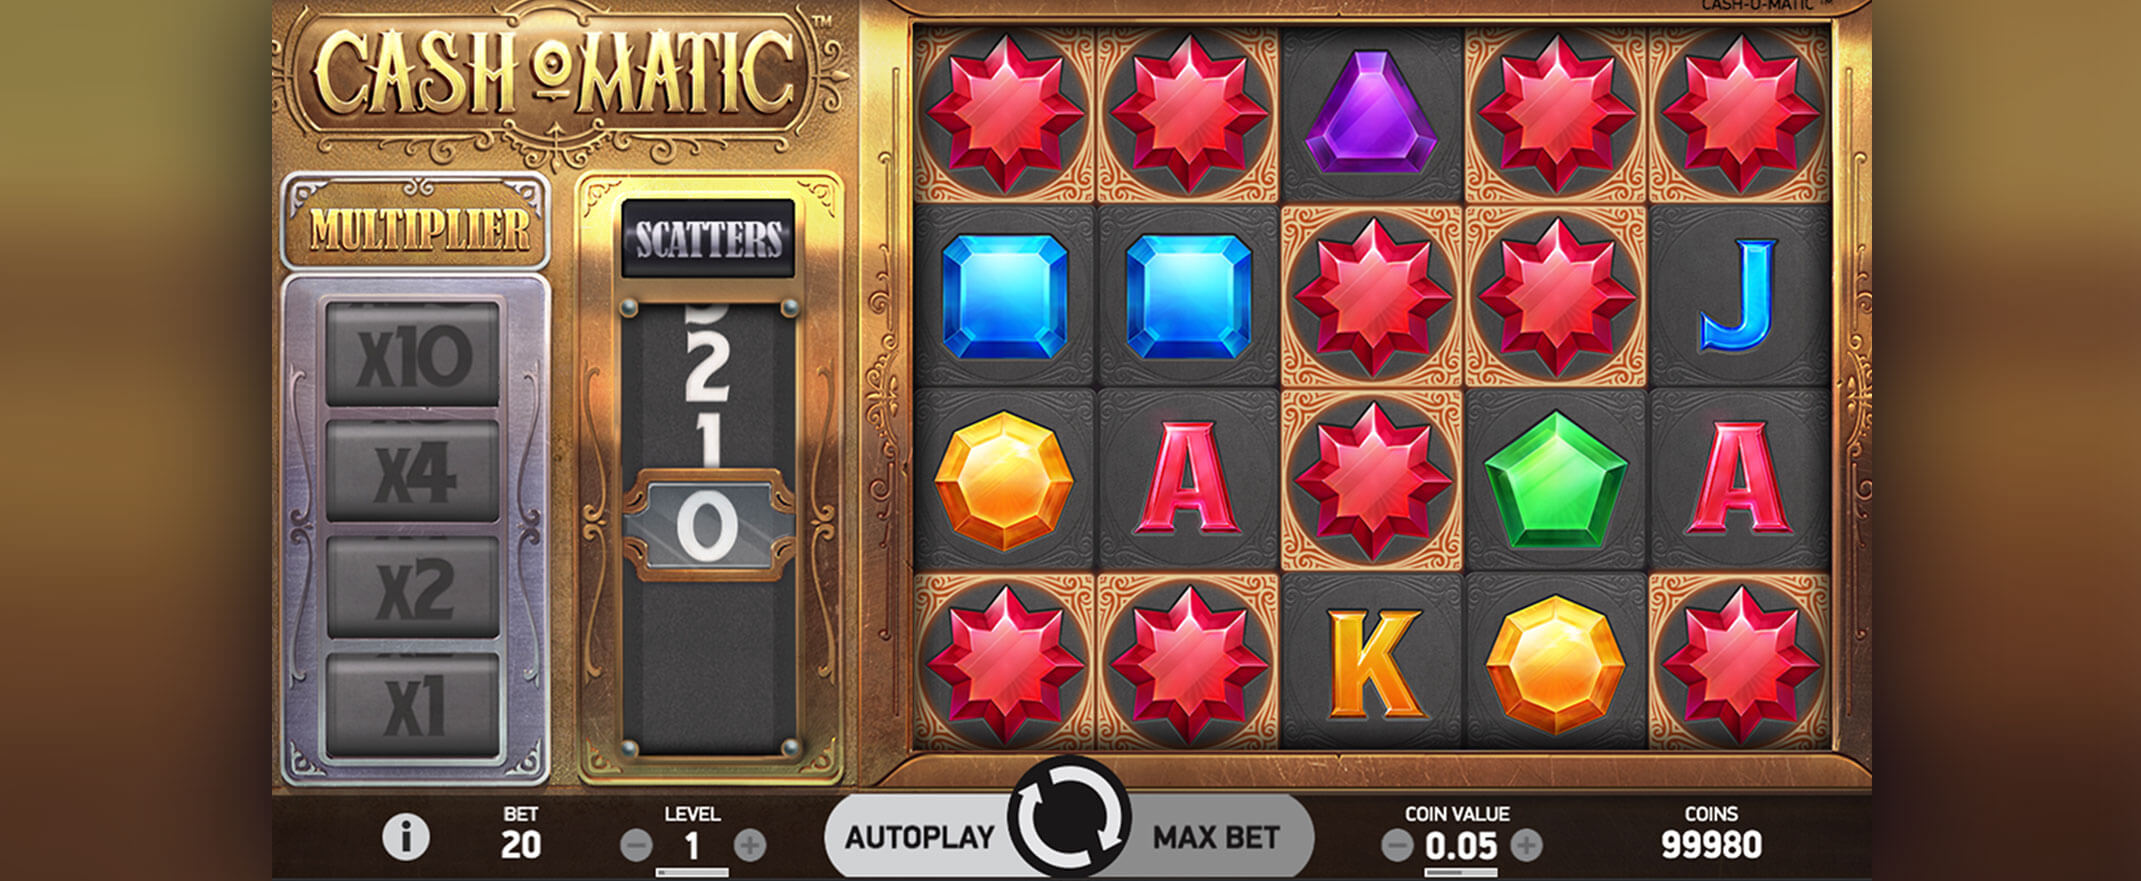 Cash-o-Matic Slot Gameplay